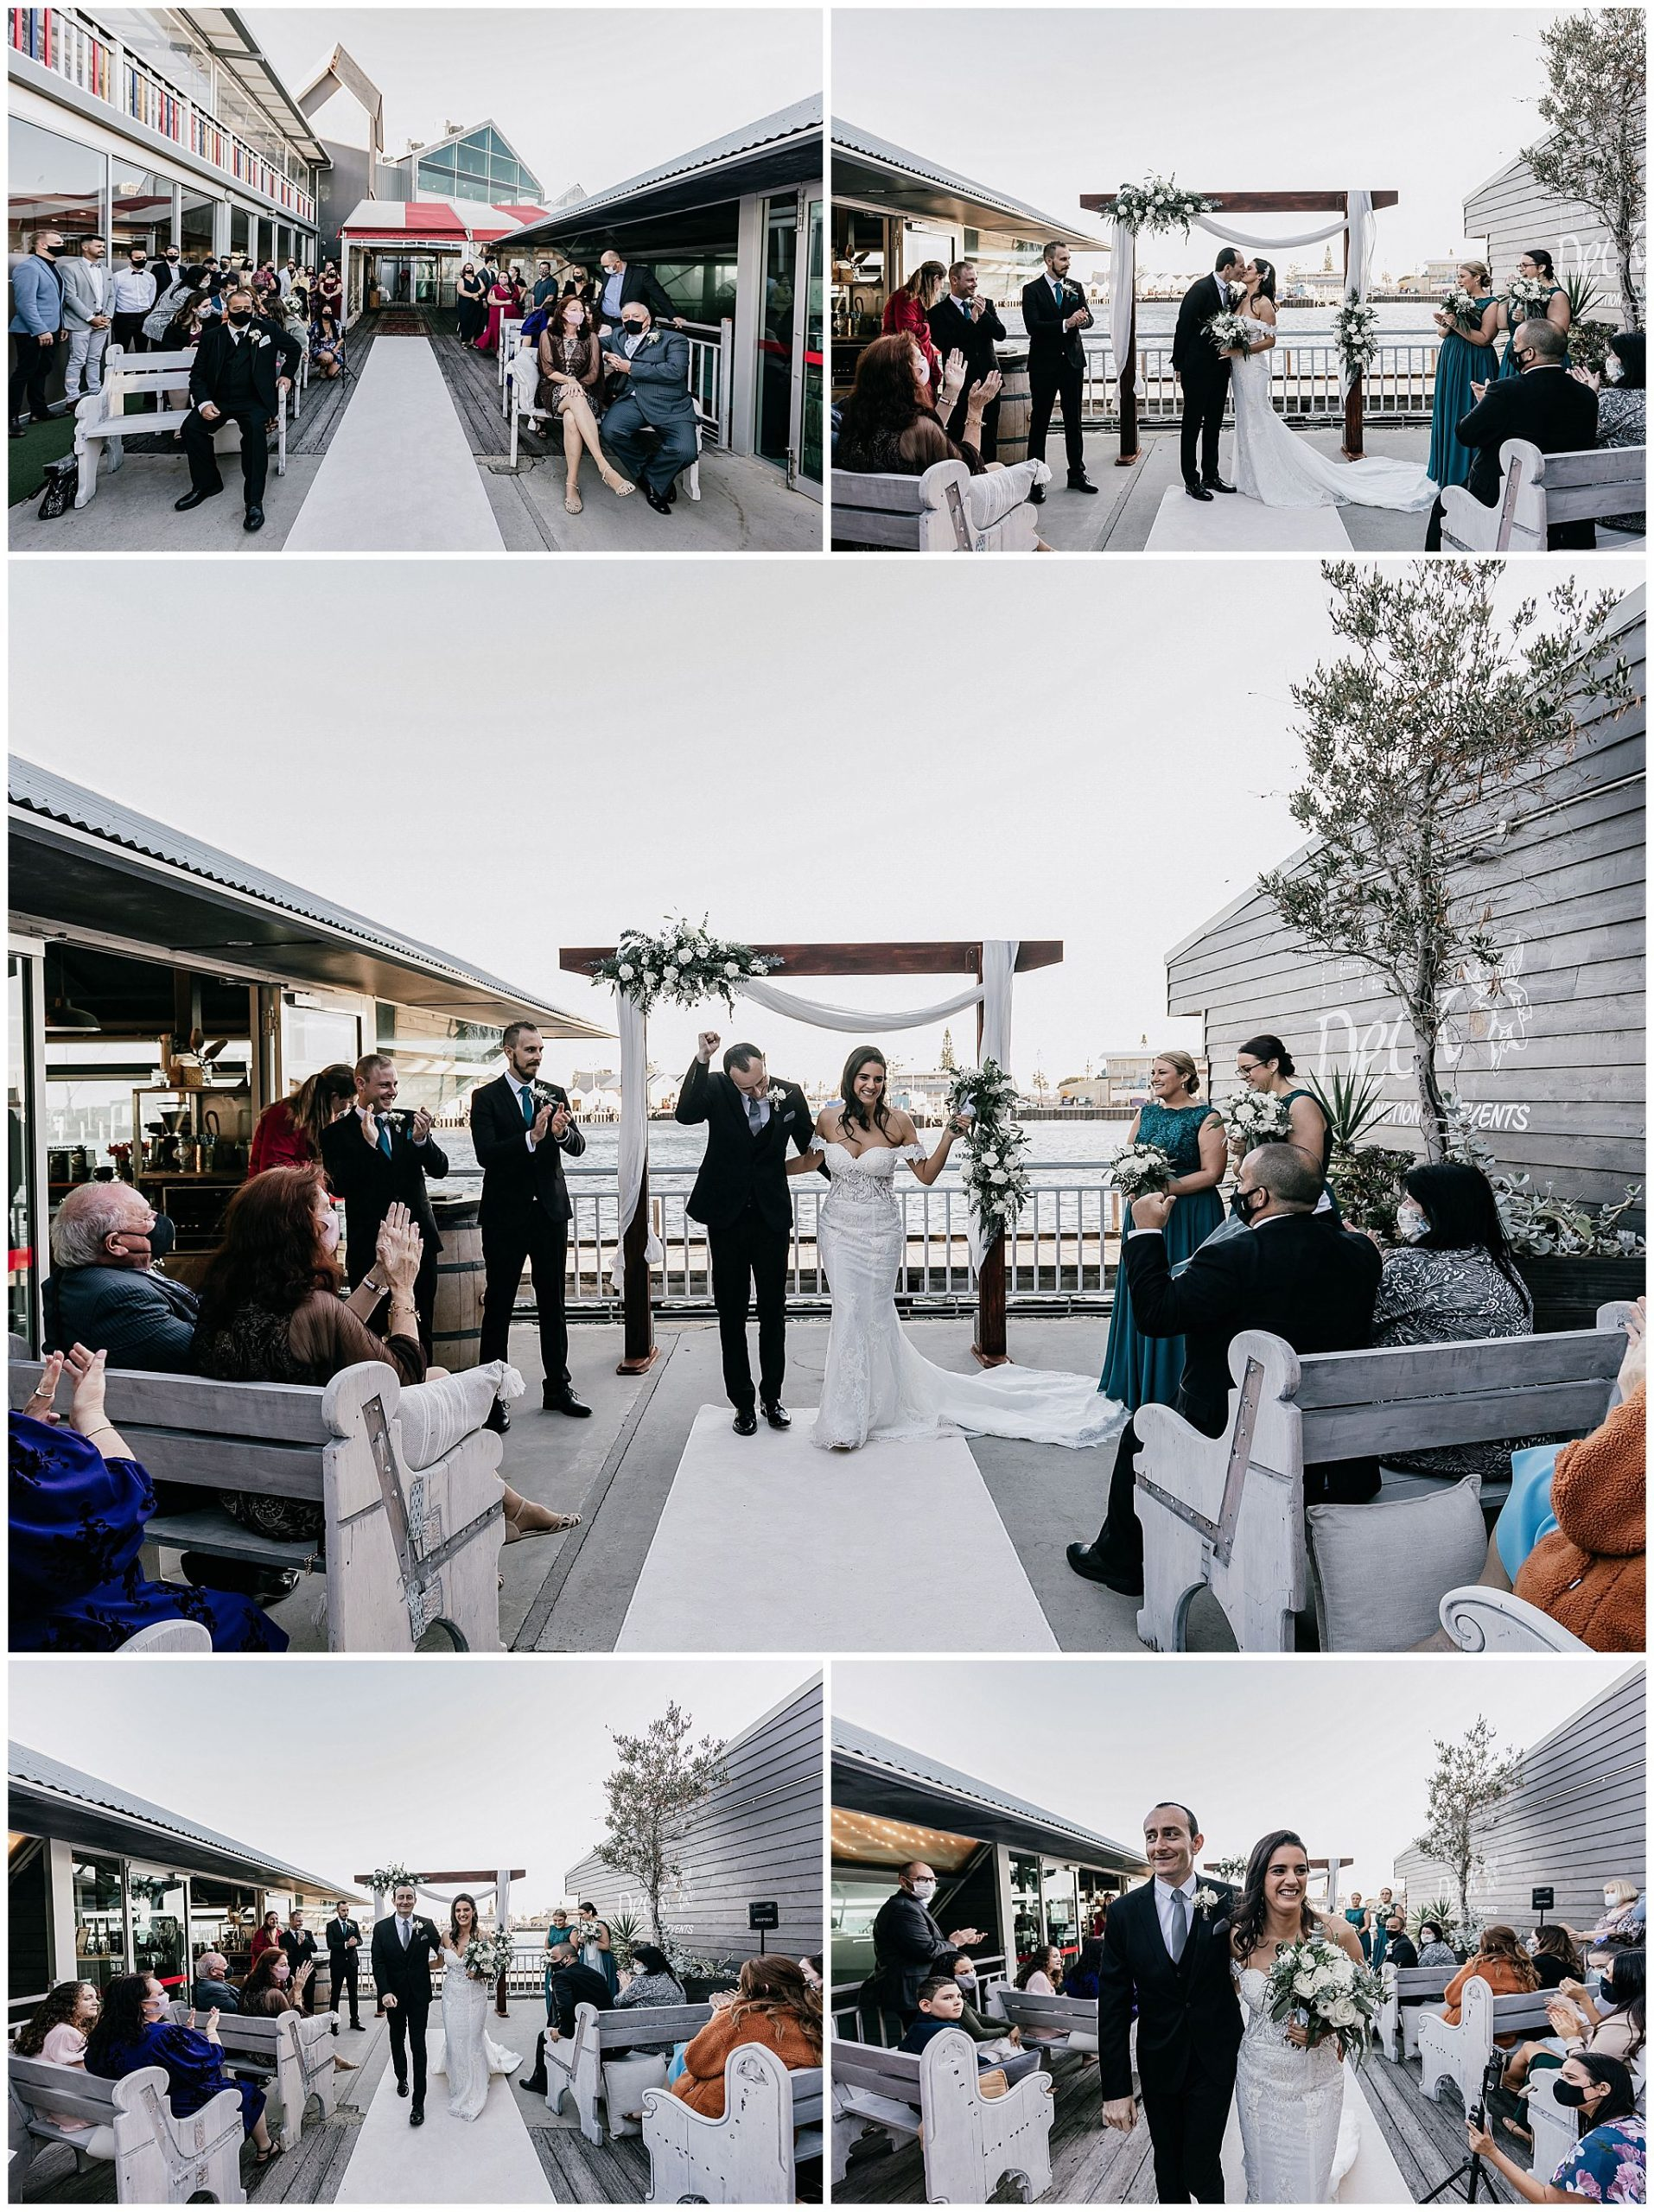 Wedding Ceremony On the Deck at Little Creatures Fremantle